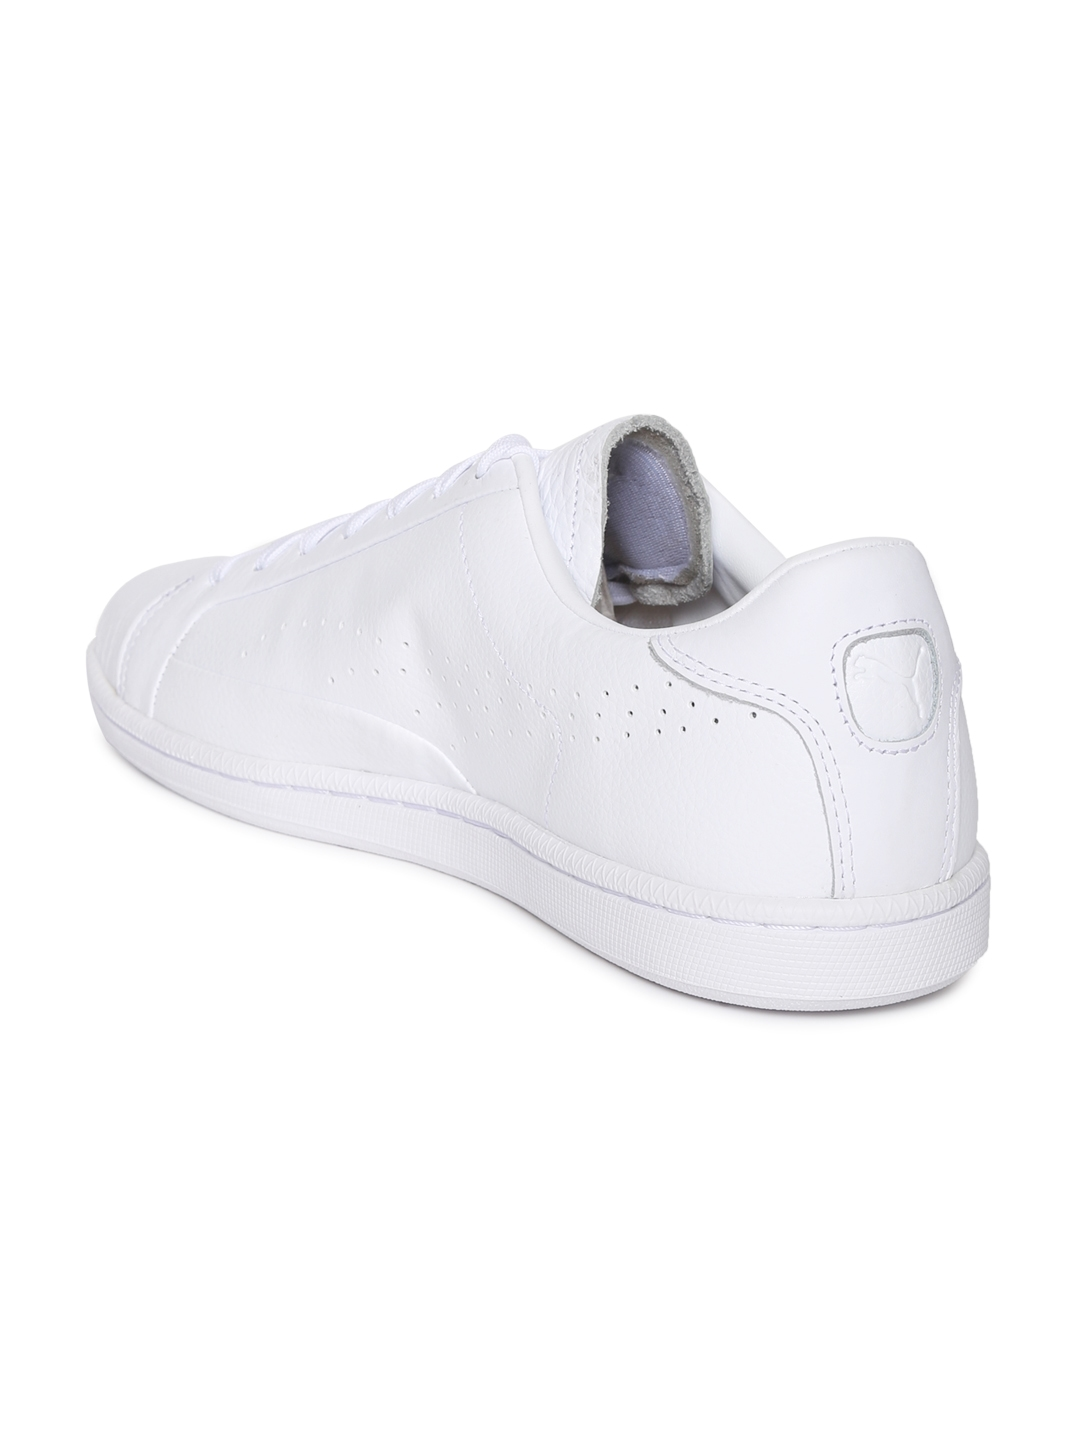 1b4c7092f790cf Puma Unisex White Match 74 Tumbled Sneakers. This product is already at its best  price